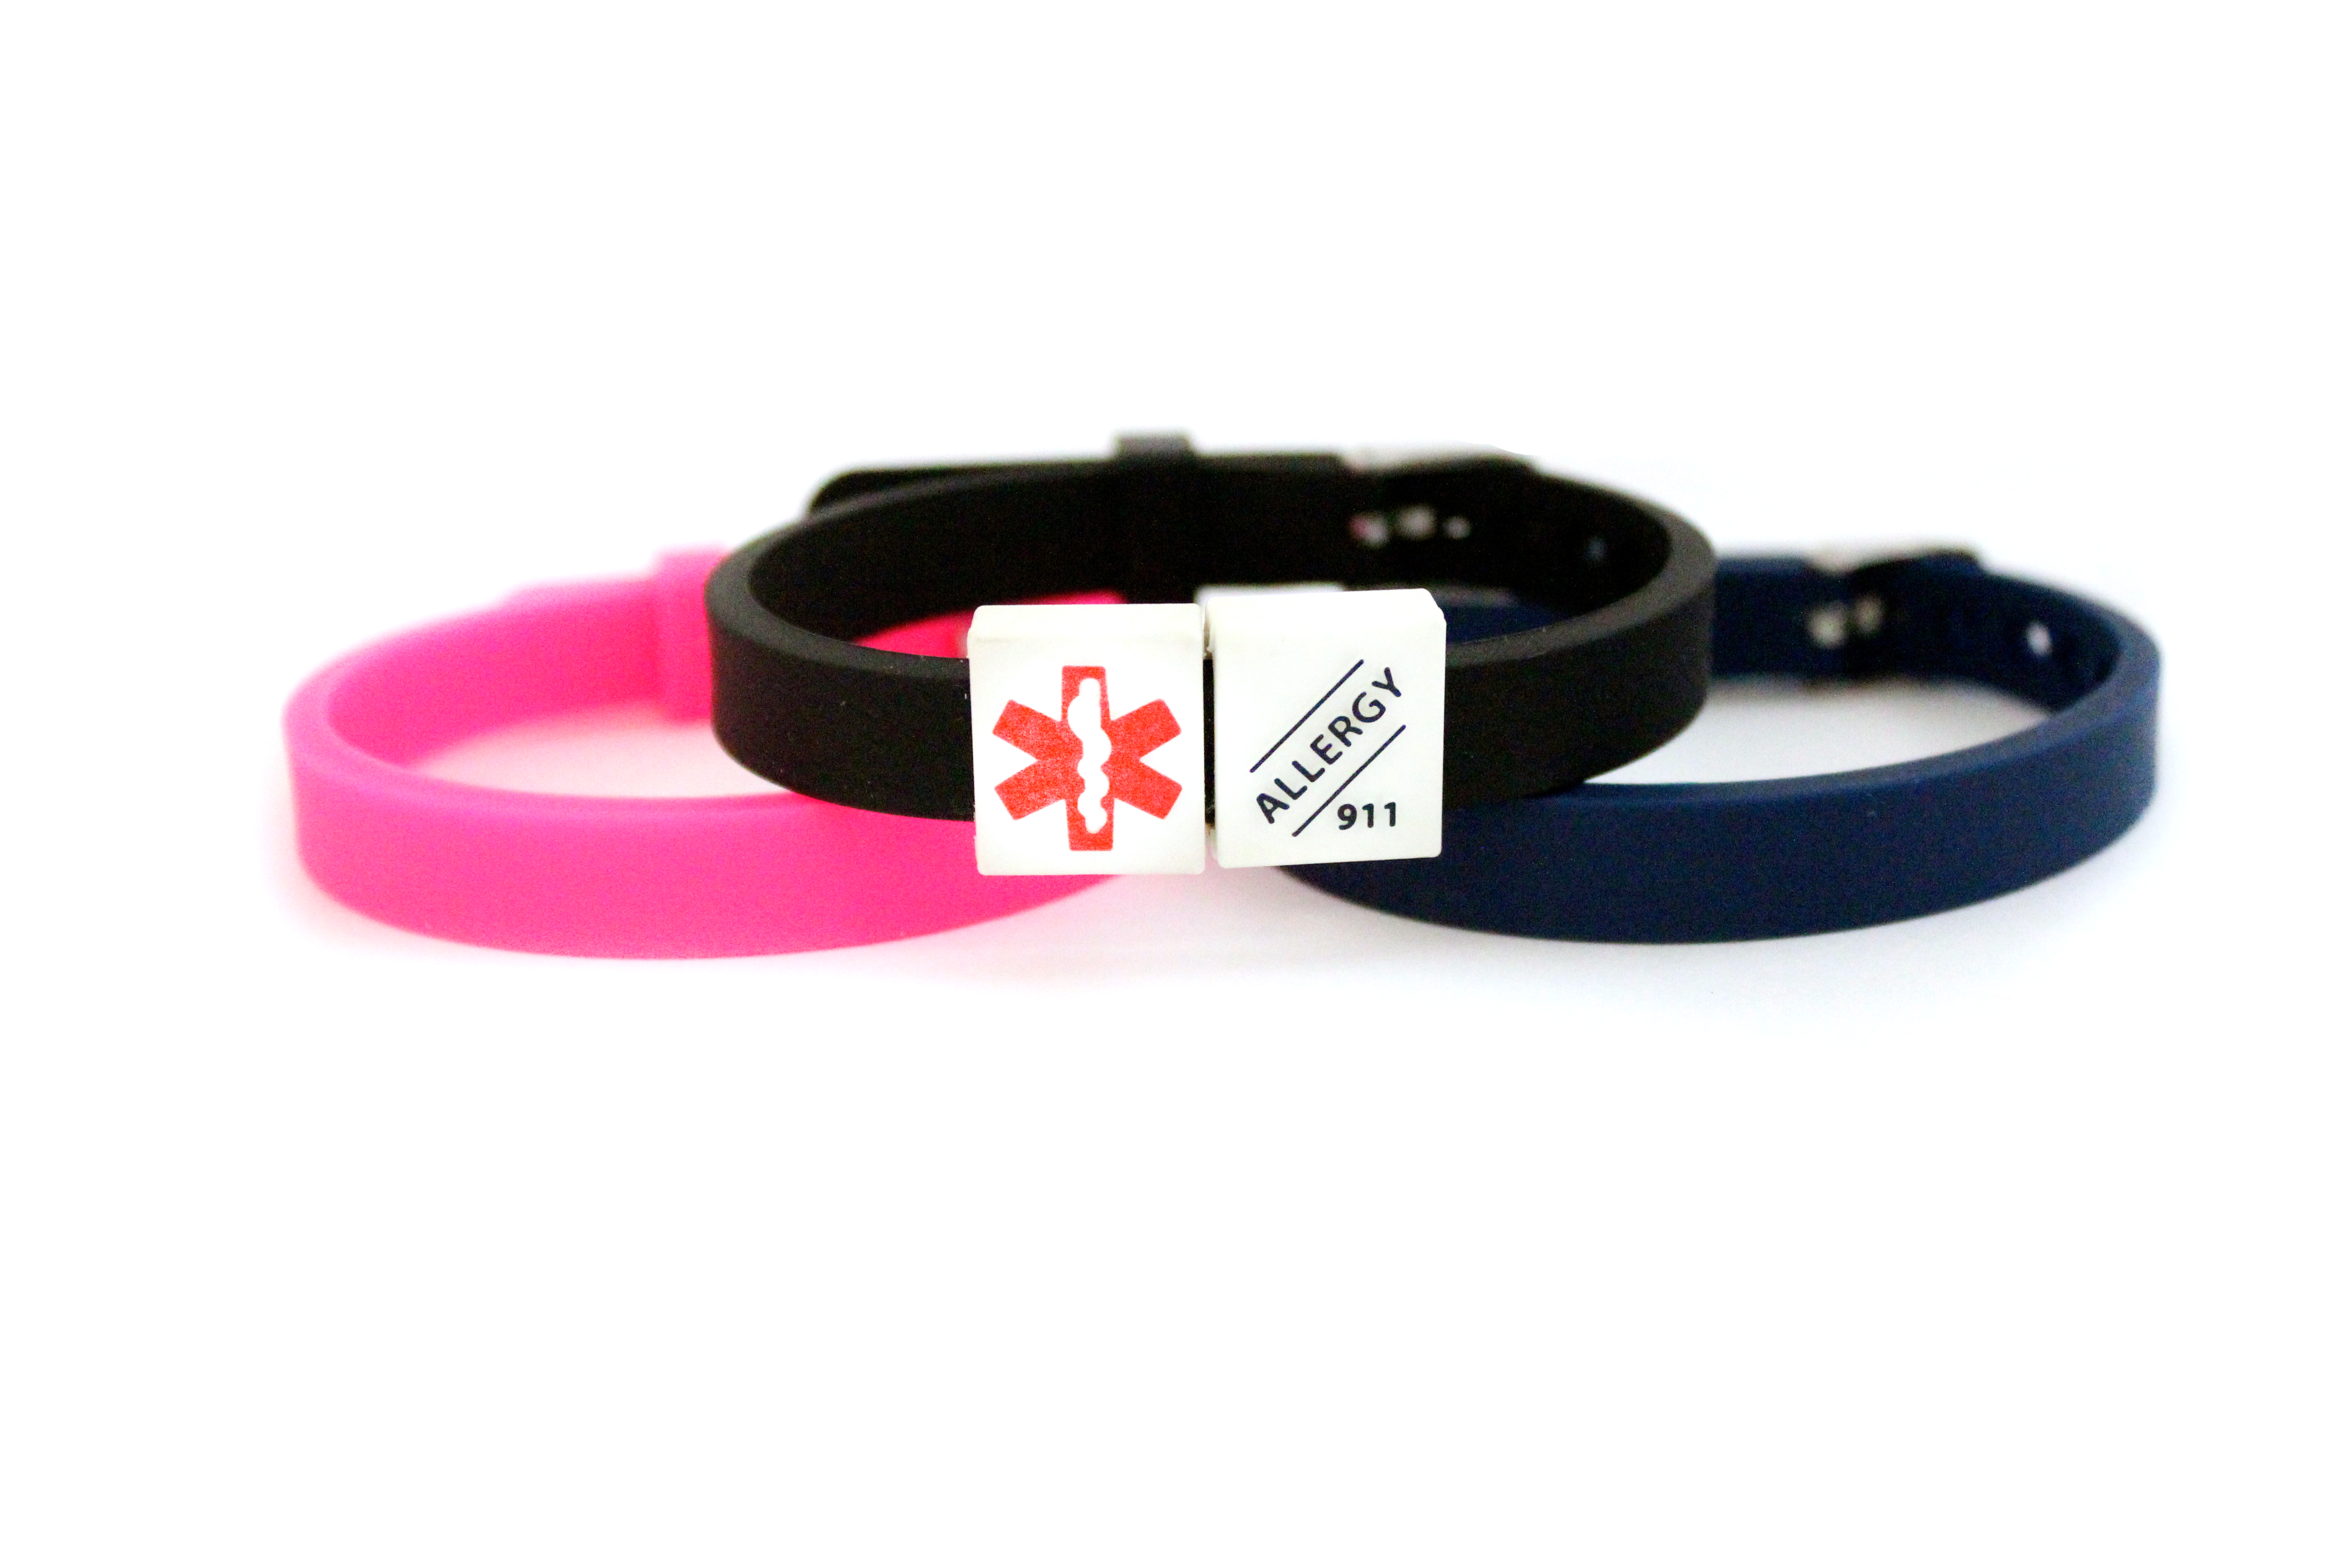 MediCube ID Rubber Watch Band Bracelet - 'Allergy. Call 911'